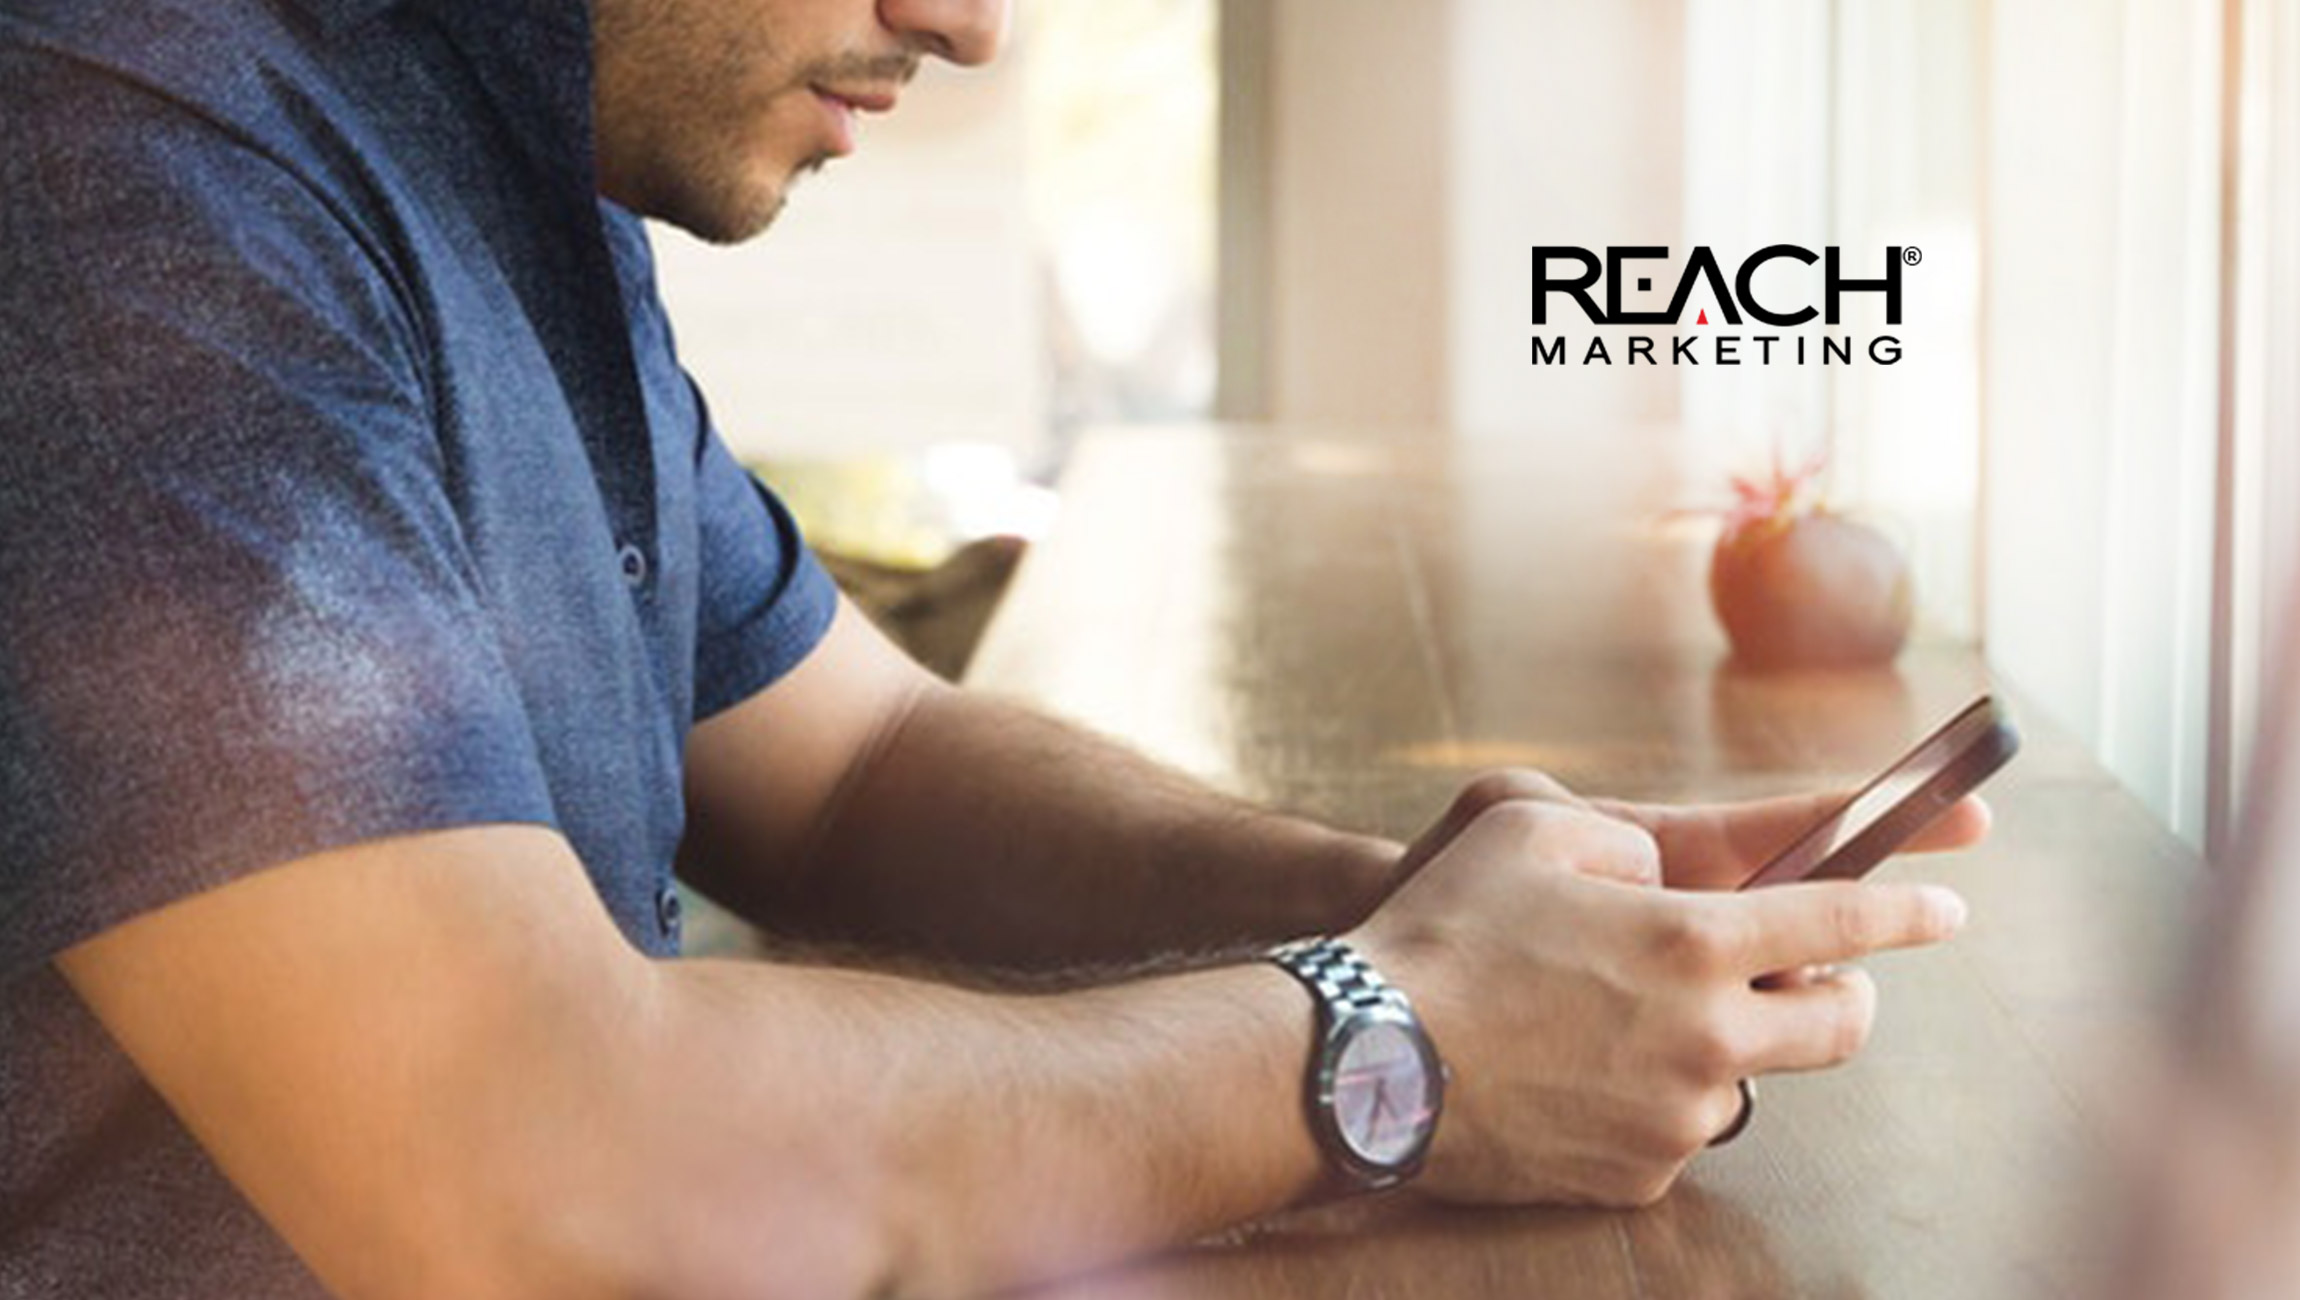 Reach Marketing Announced That It Has Acquired UnReal Web Marketing, a Search Optimization, Web Design and Content Marketing Business